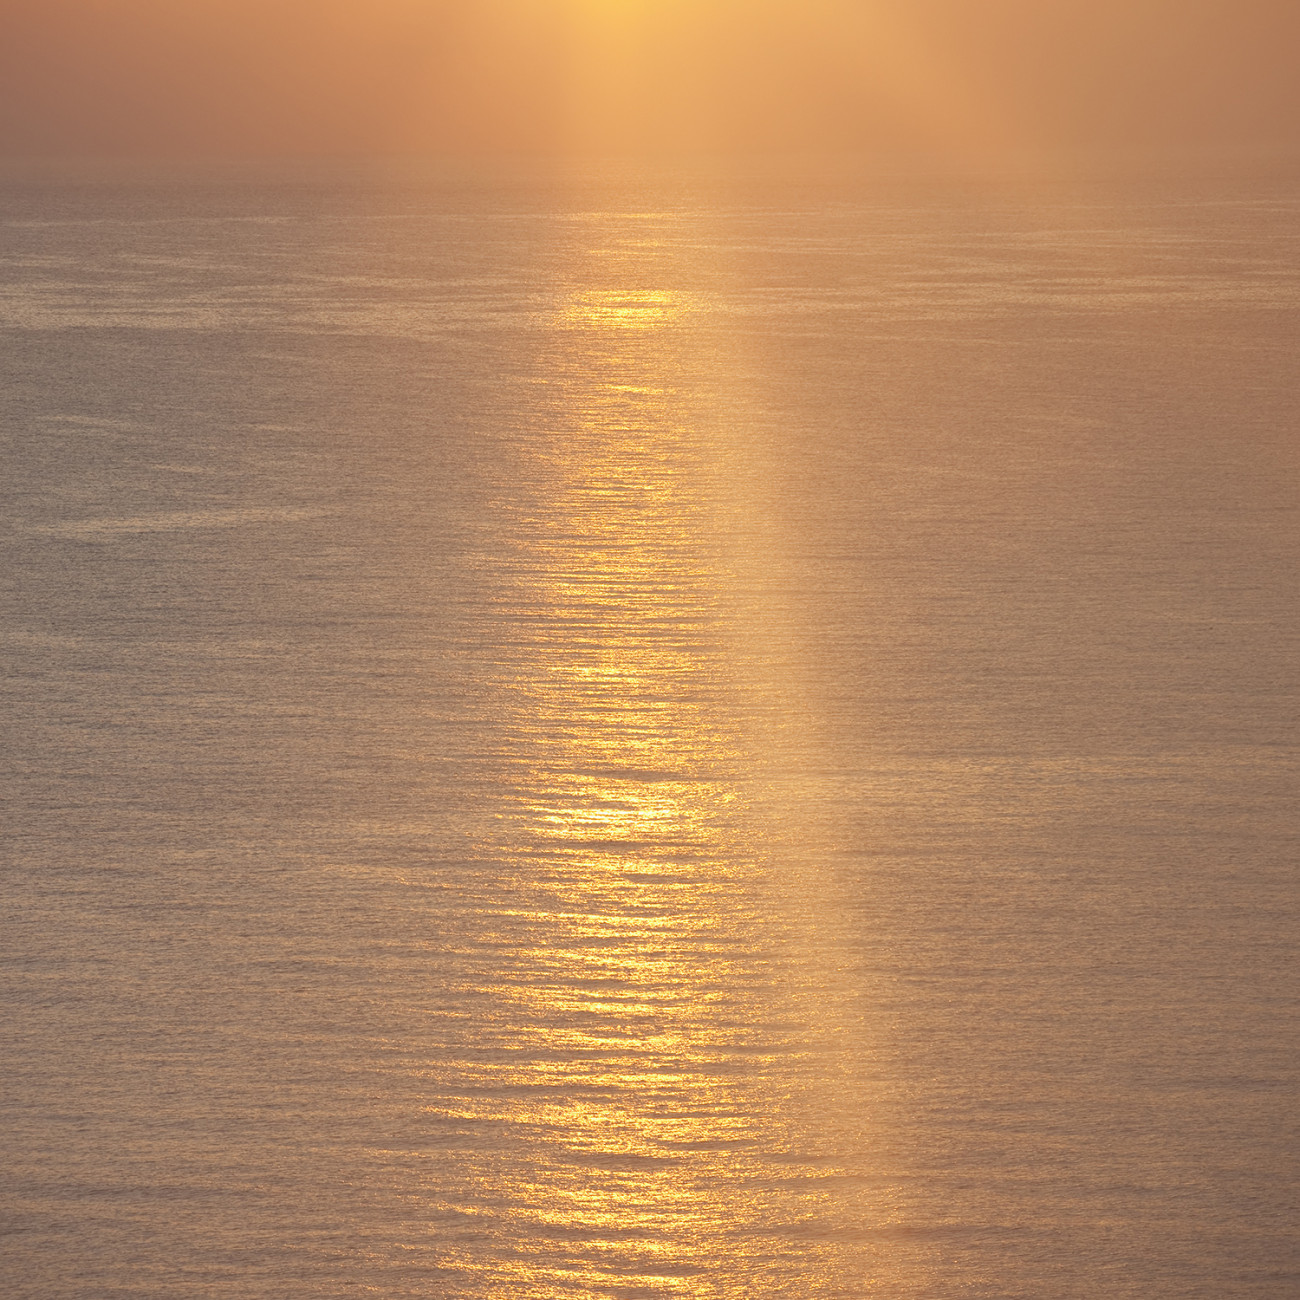 Sun flare at sunrise, Atlantic Ocean, 2009